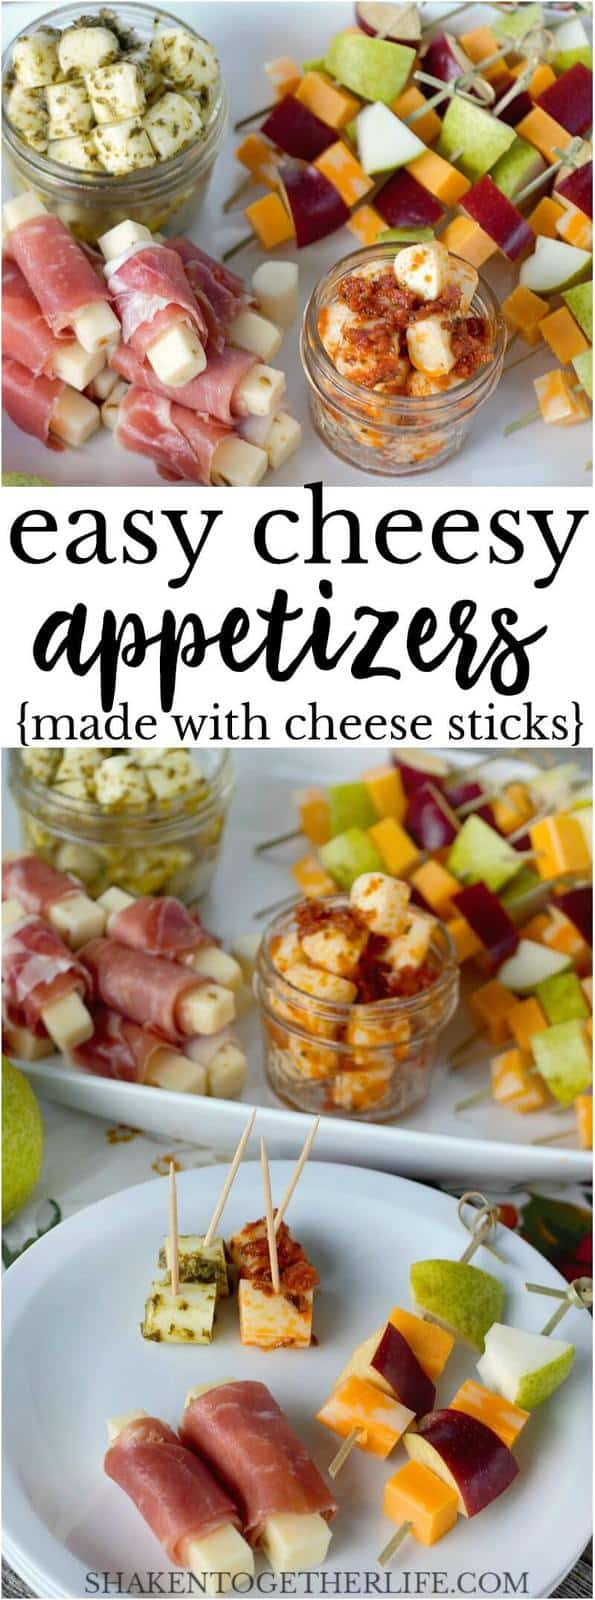 3 Easy Cheesy Appetizers made using cheese sticks! Pesto Mozzarella Bites, Prosciutto Wrapped Pepper Jack and Fruit & Cheese Skewers are simple and delicious!